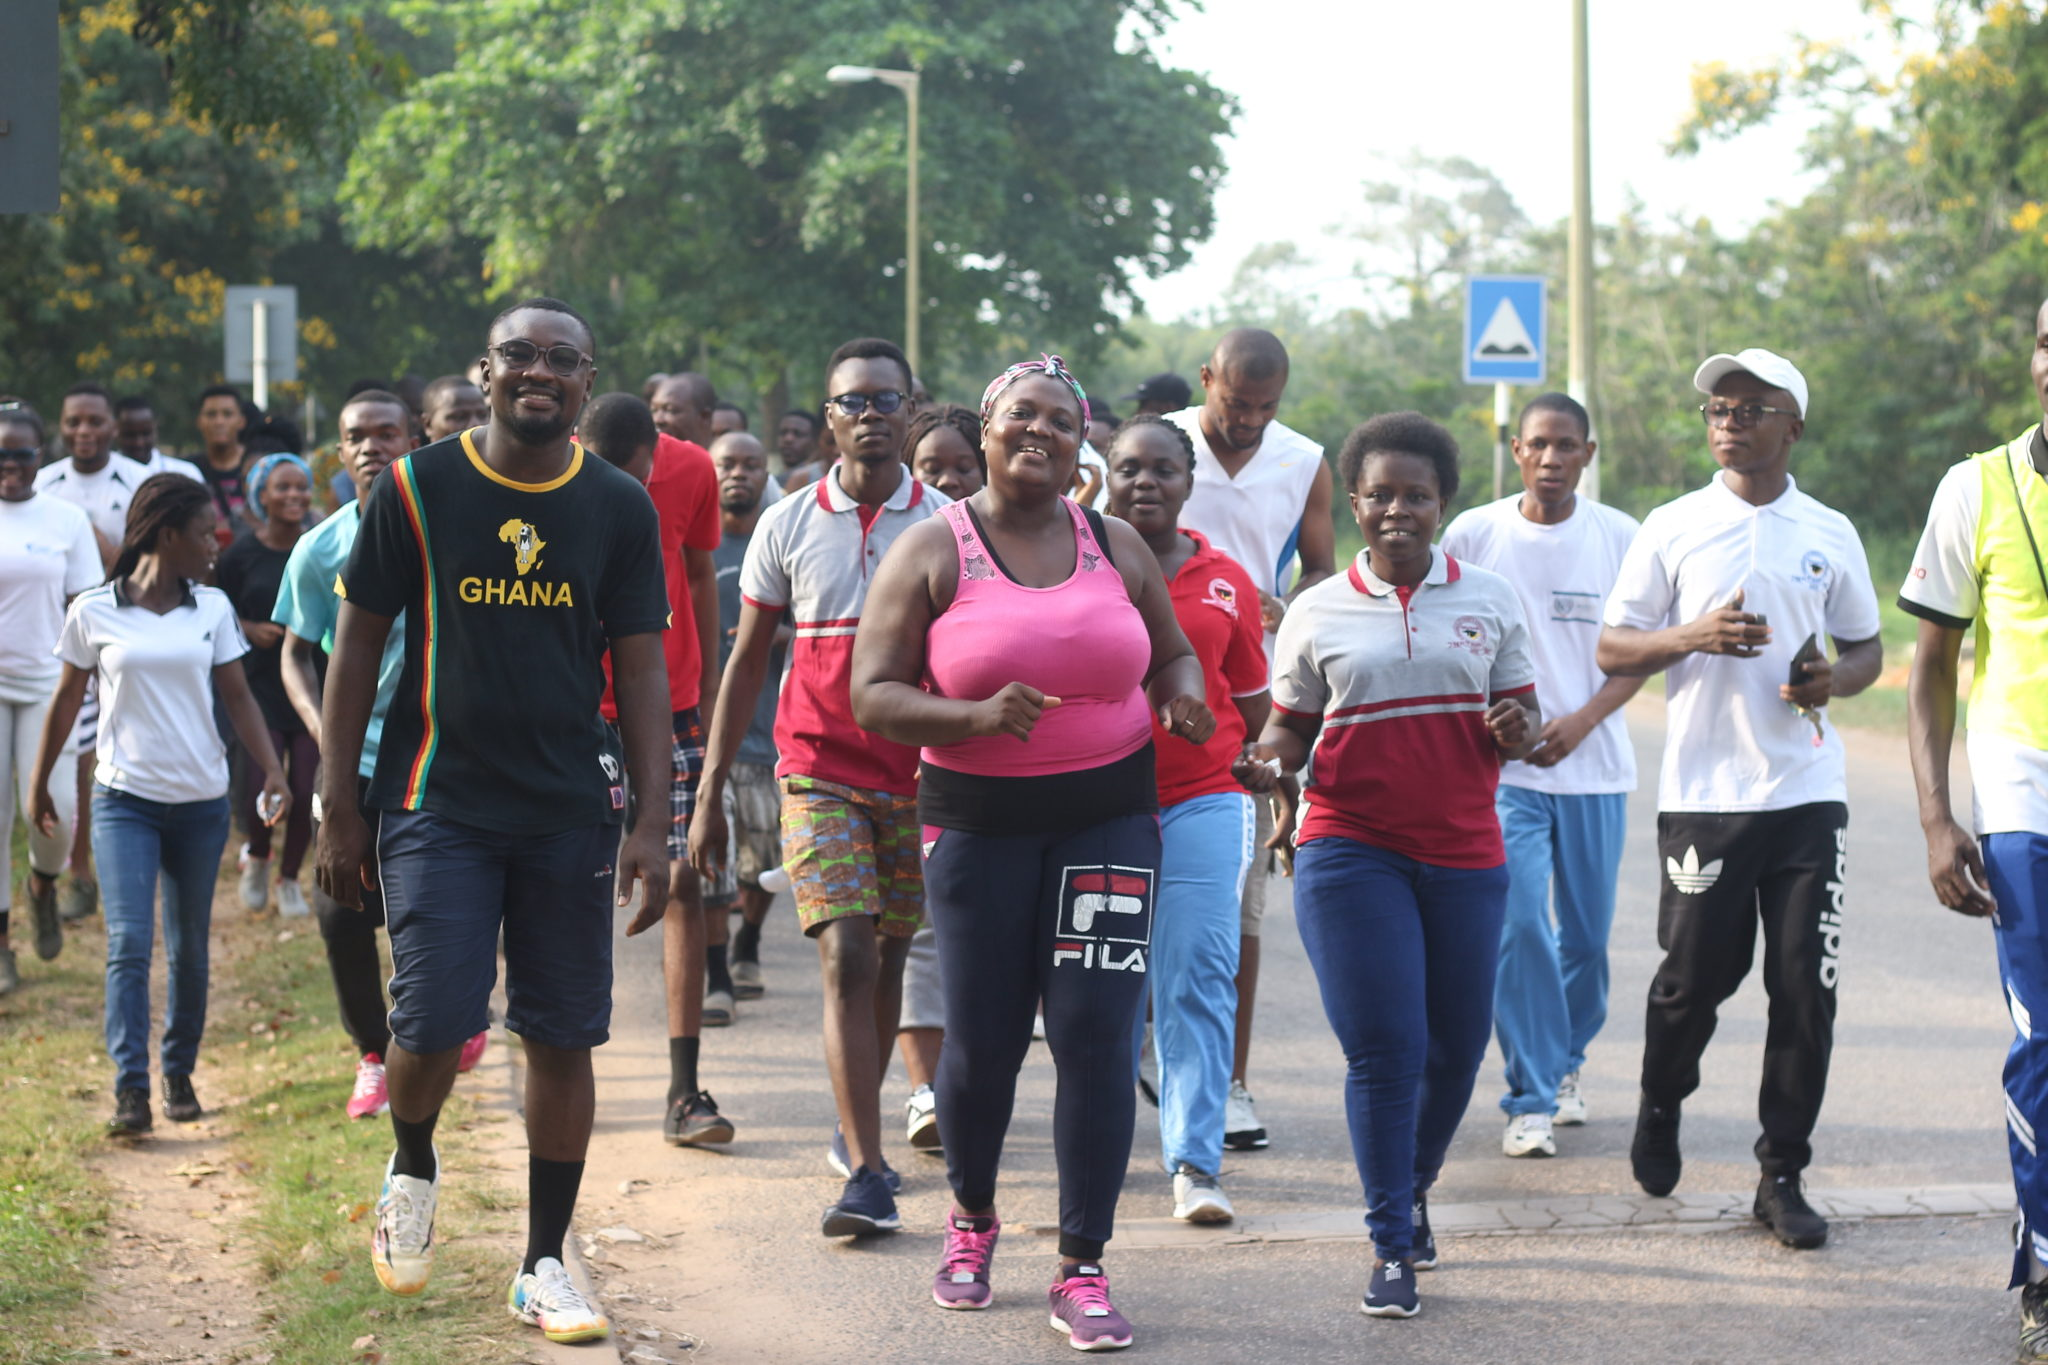 GRASAG UCC MARKS FARMERS DAY HOLIDAY WITH A HEALTH WALK AND AEROBICS